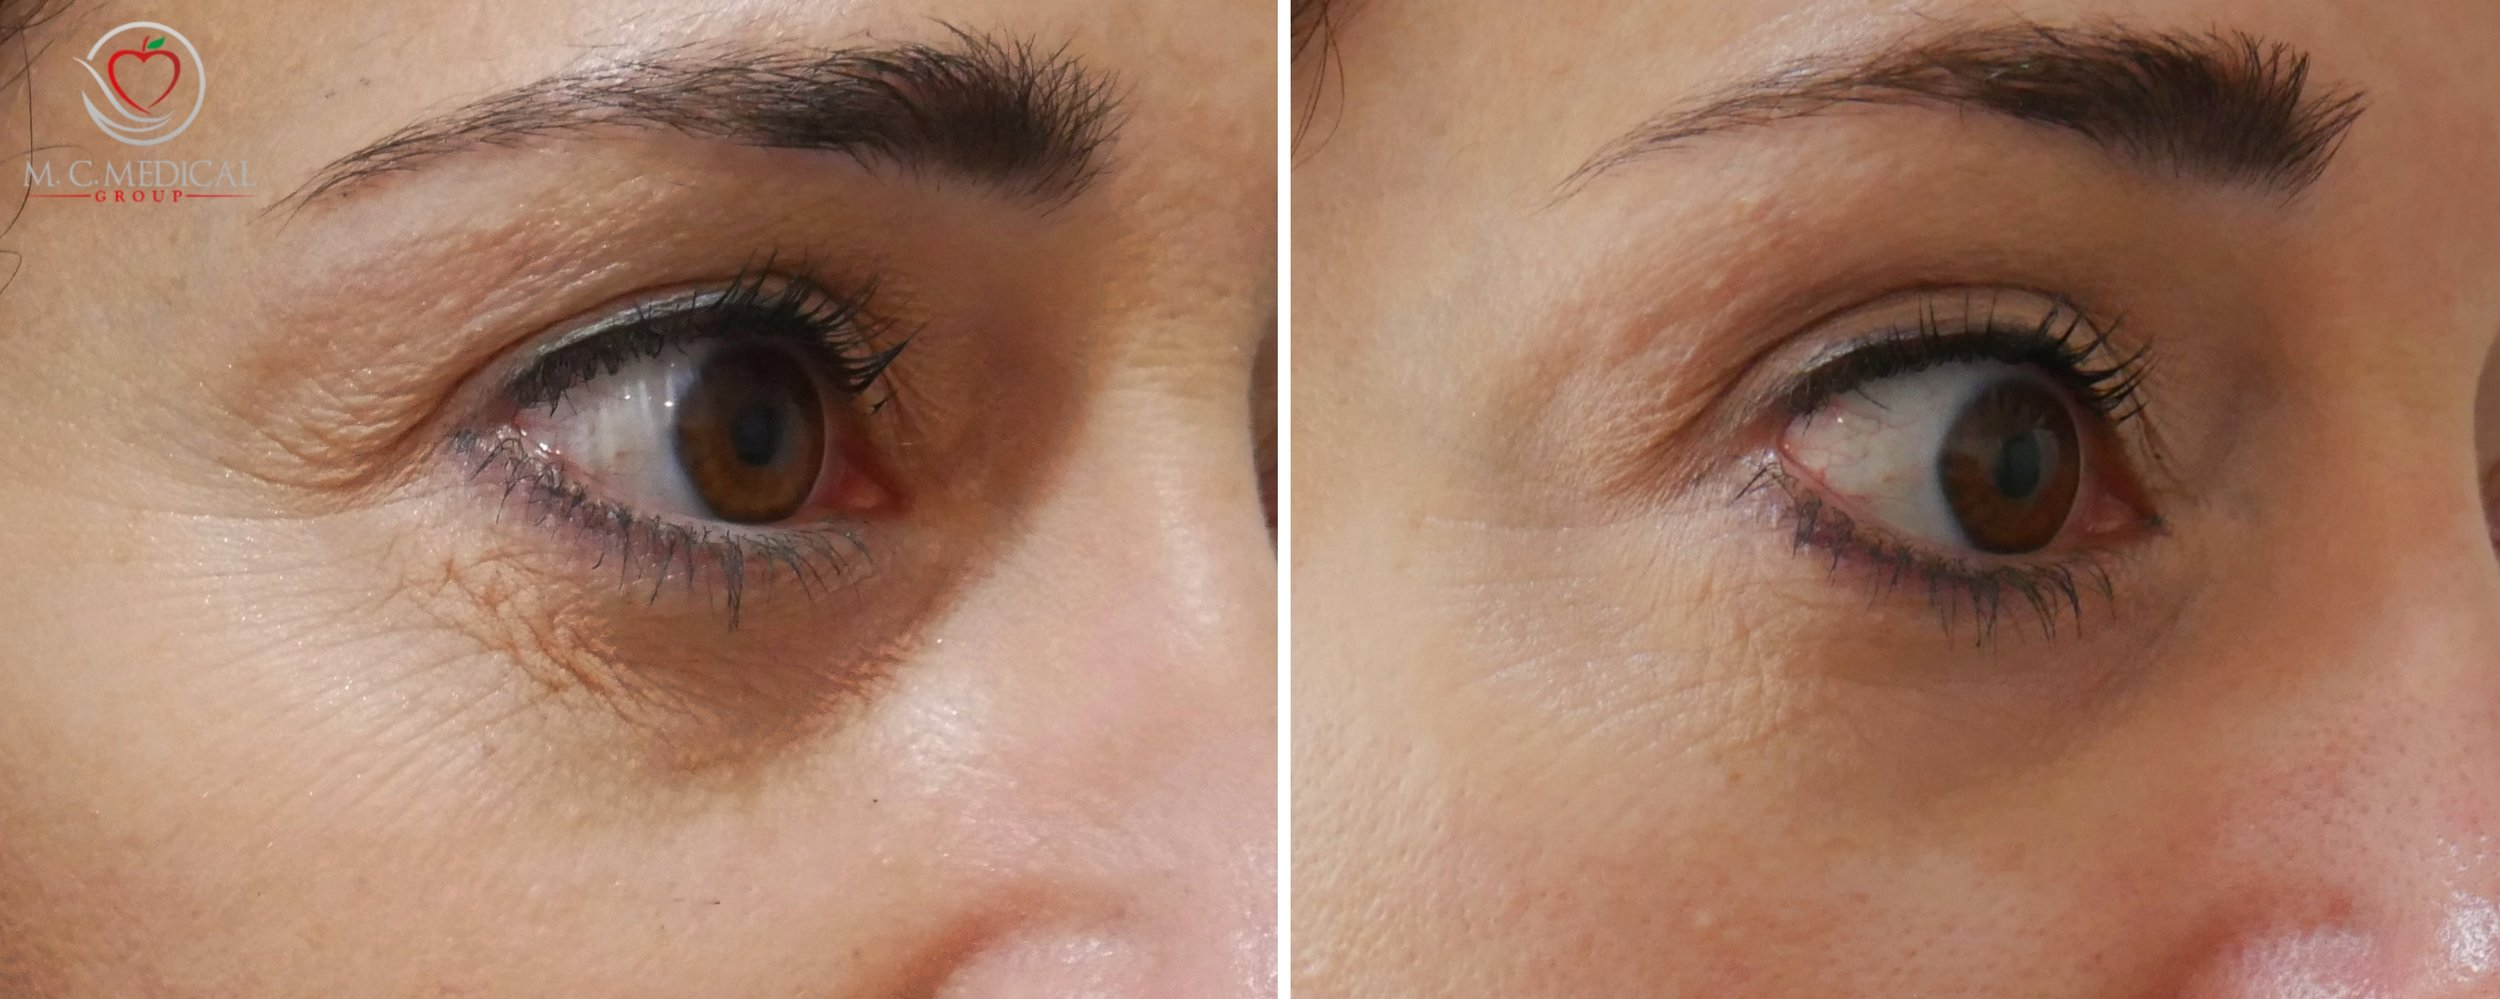 Patient's results are shown after one month of PRP treatment. (topical, no injections)